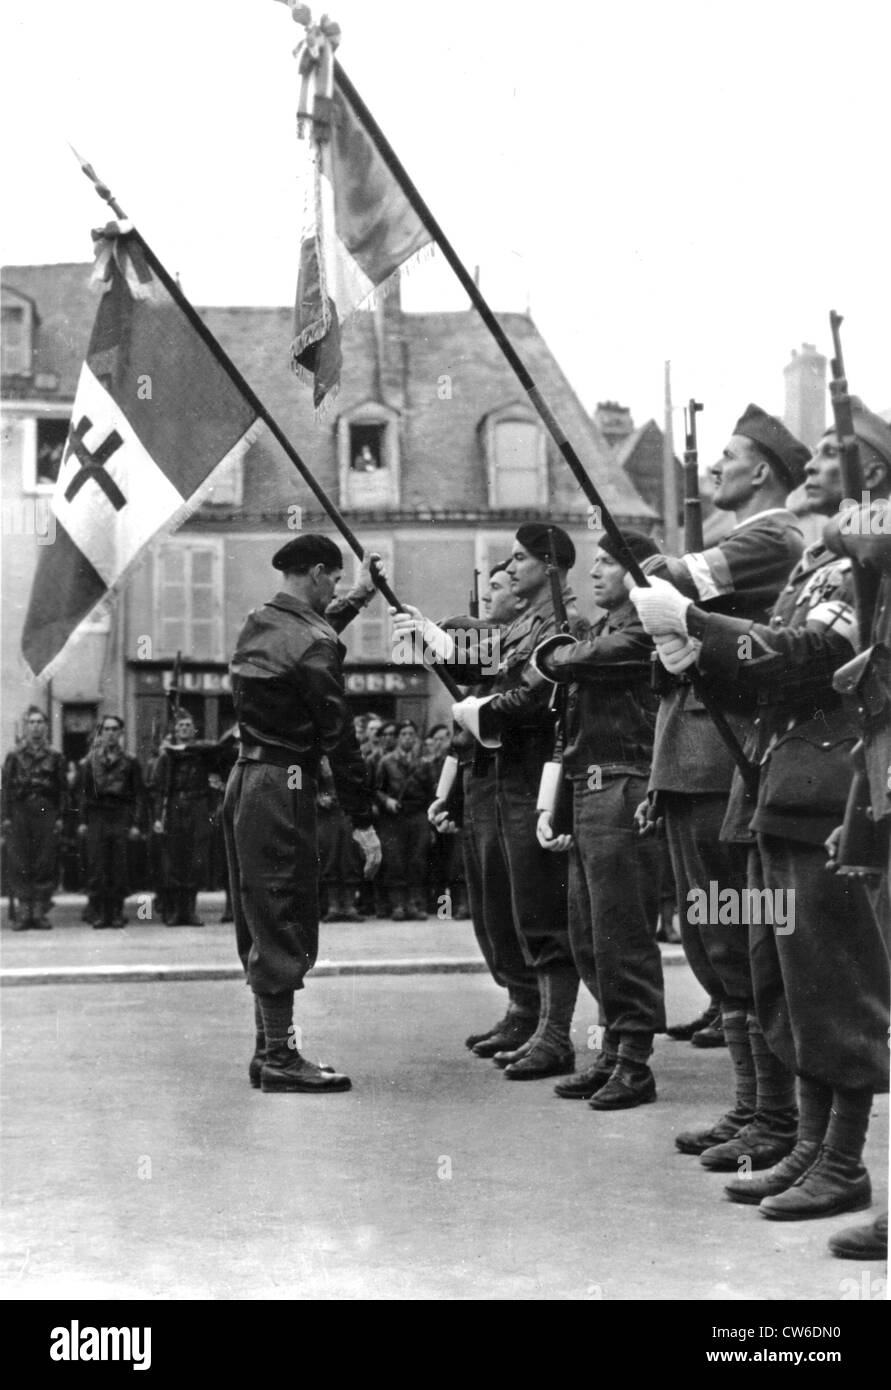 Ceremony in Le Mans August 1944 - Stock Image